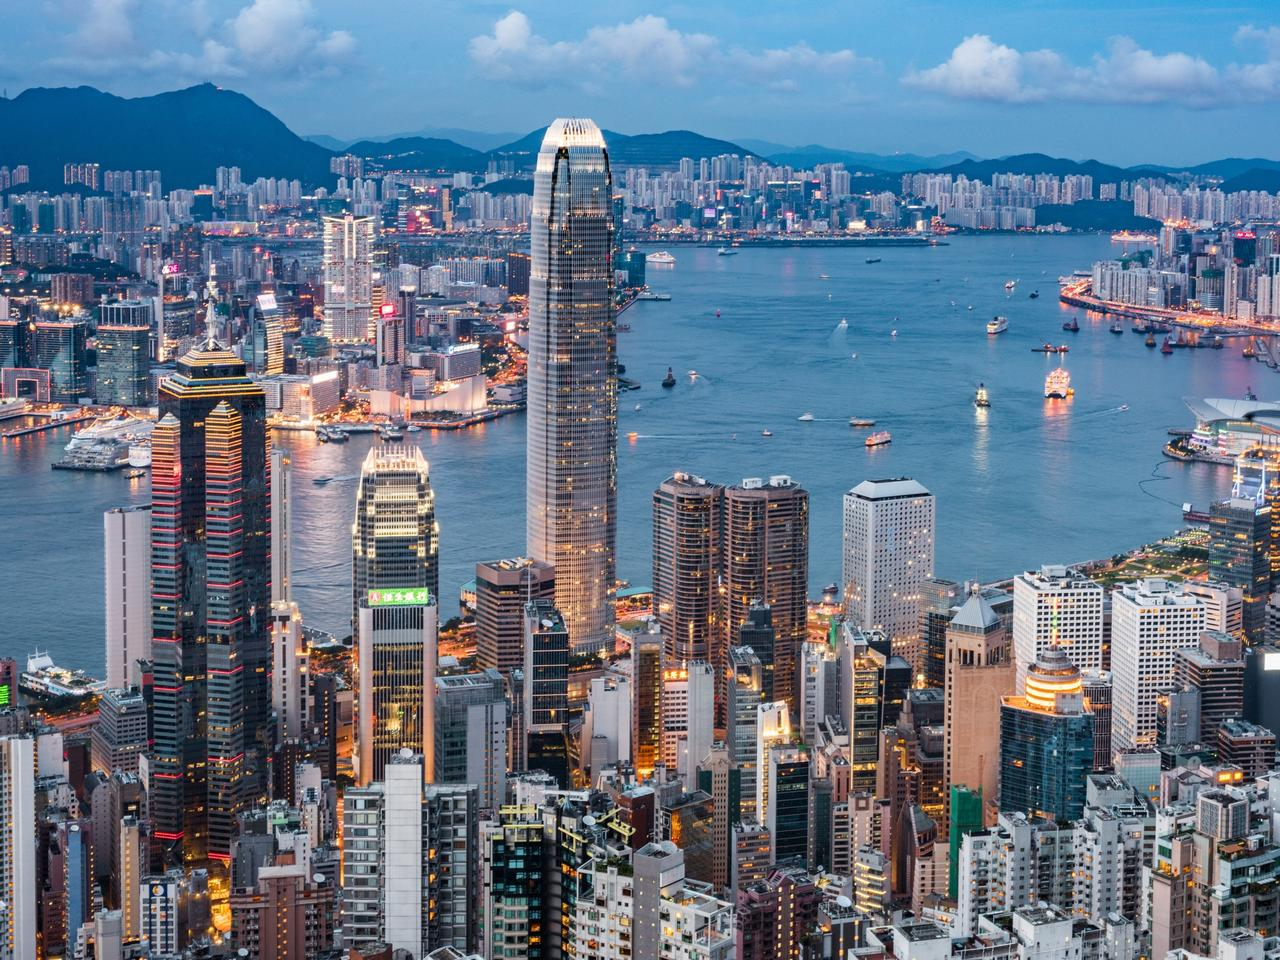 View of the Hong Kong skyline.